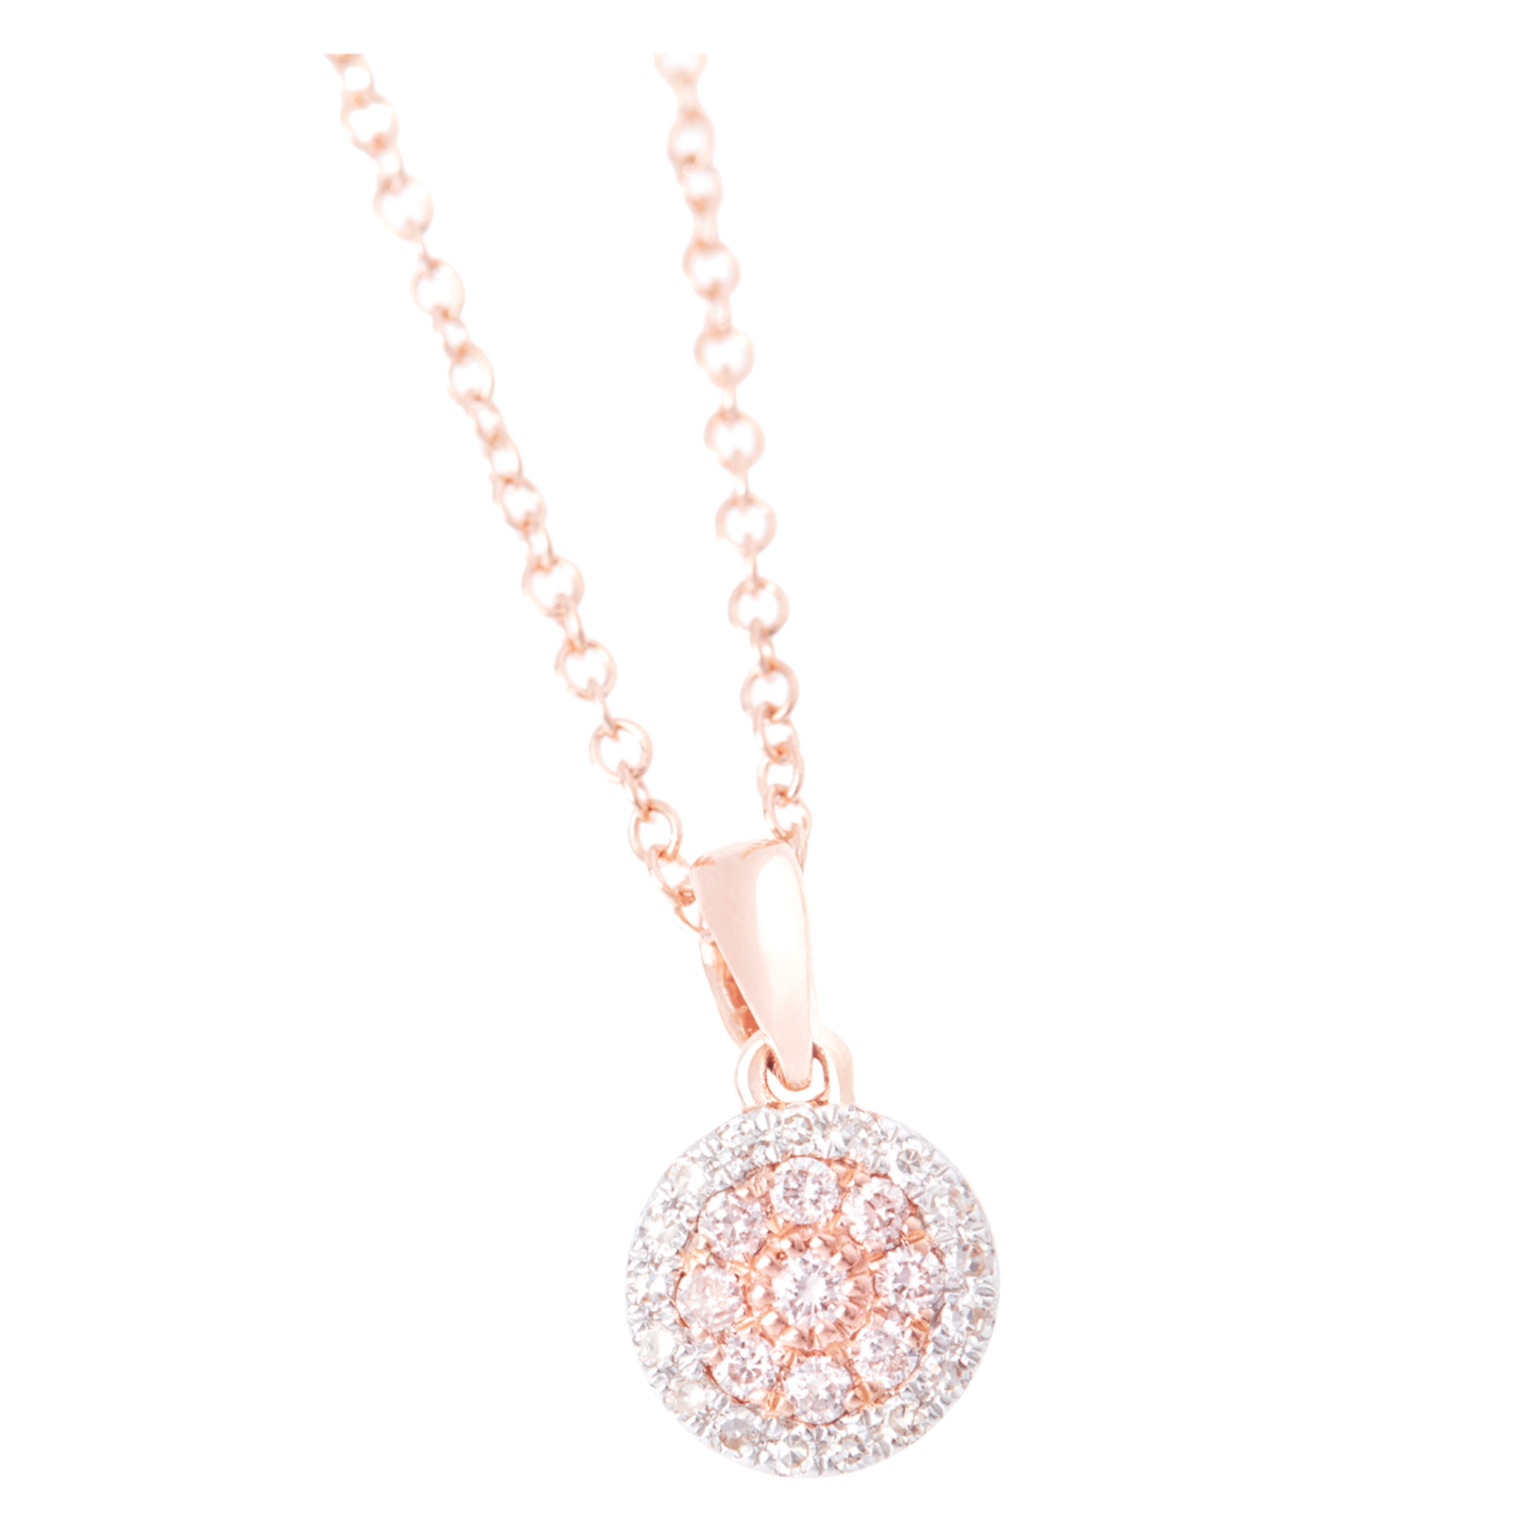 Eminence Pinks Diamond Disc Pendant p4